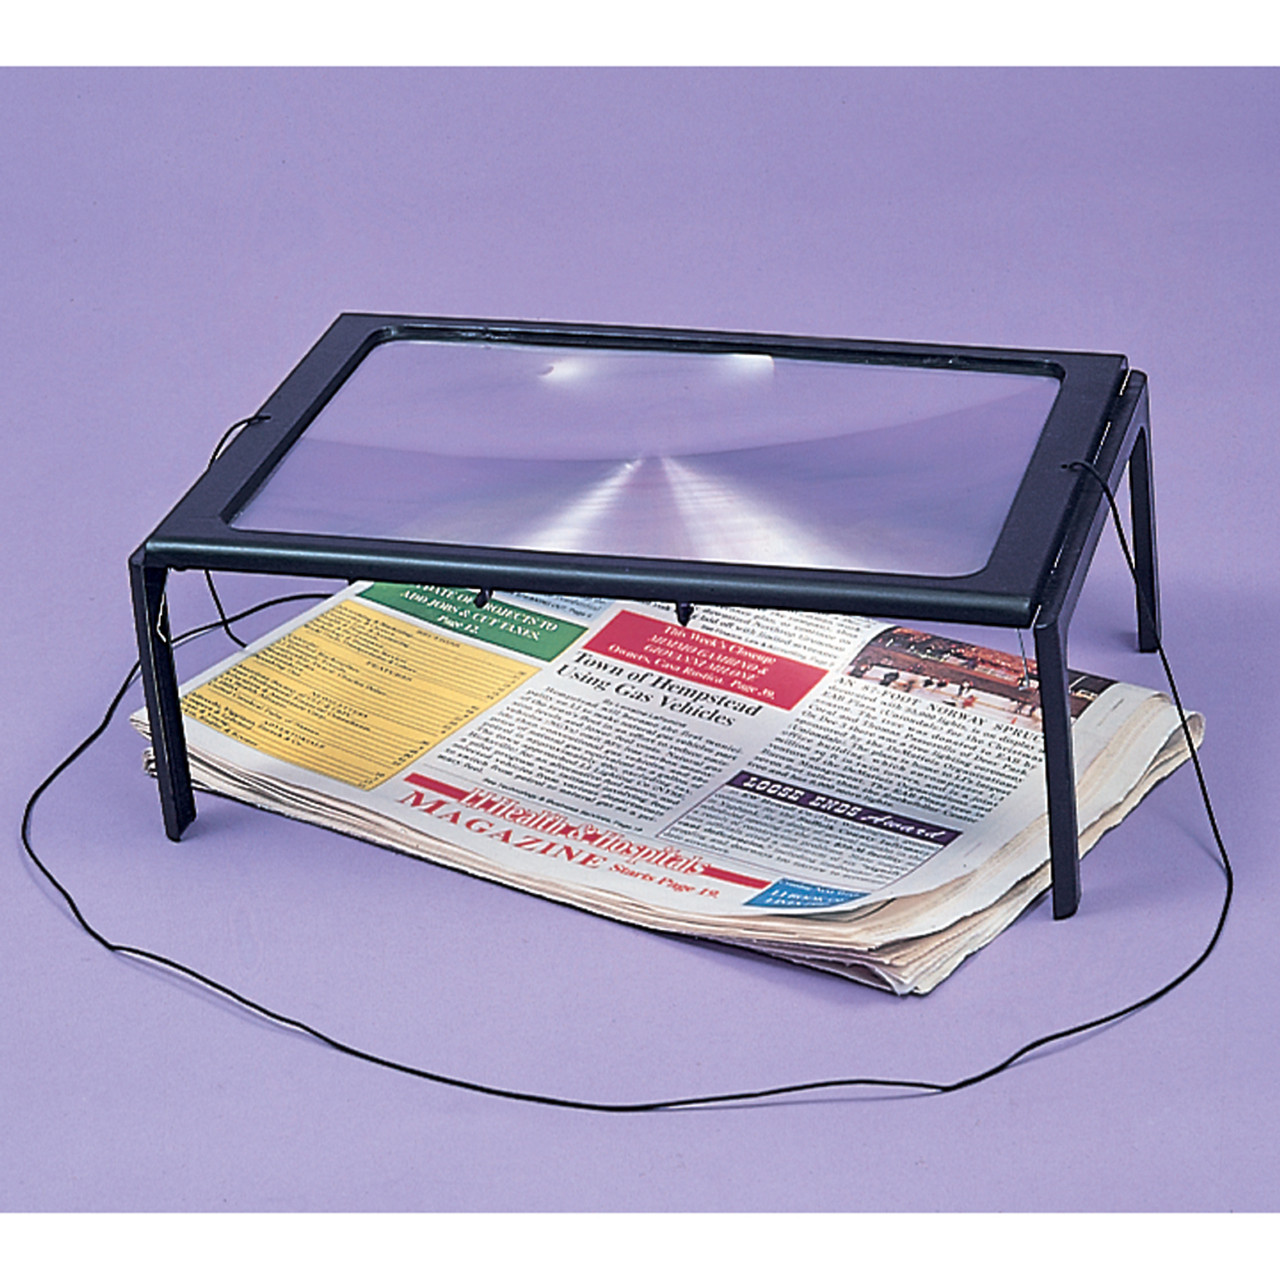 Full Page Magnifier on legs with LED light